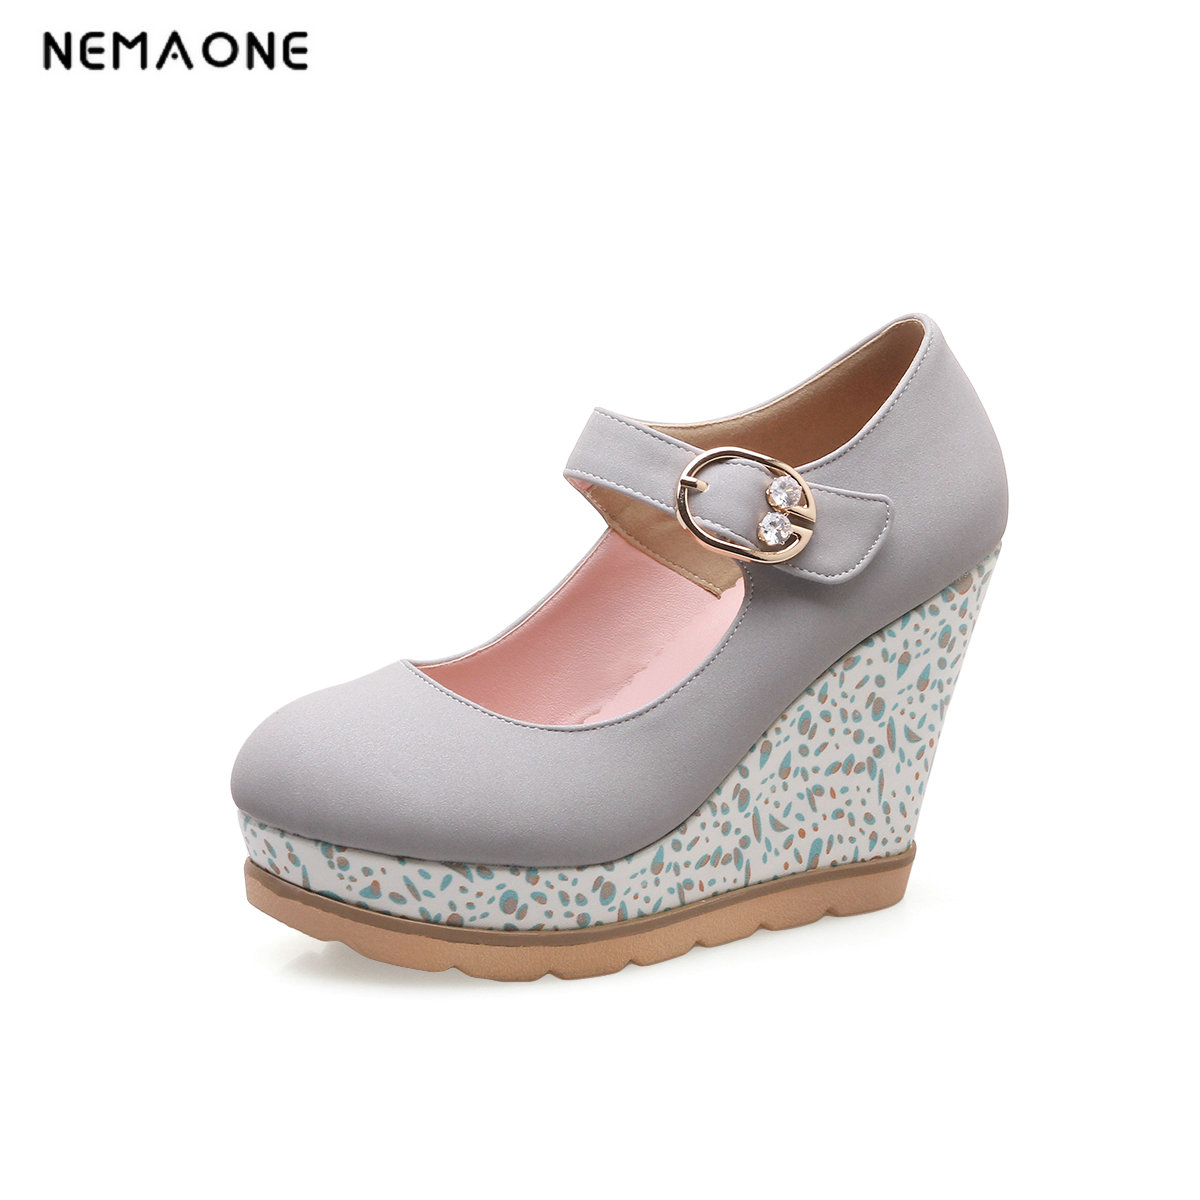 NEMAONE Women Pumps PU Leather Woman Shoes Ankle Strap Platform Wedge High Heel round Toe Ladies Pumps Size 34-43 nayiduyun women genuine leather wedge high heel pumps platform creepers round toe slip on casual shoes boots wedge sneakers